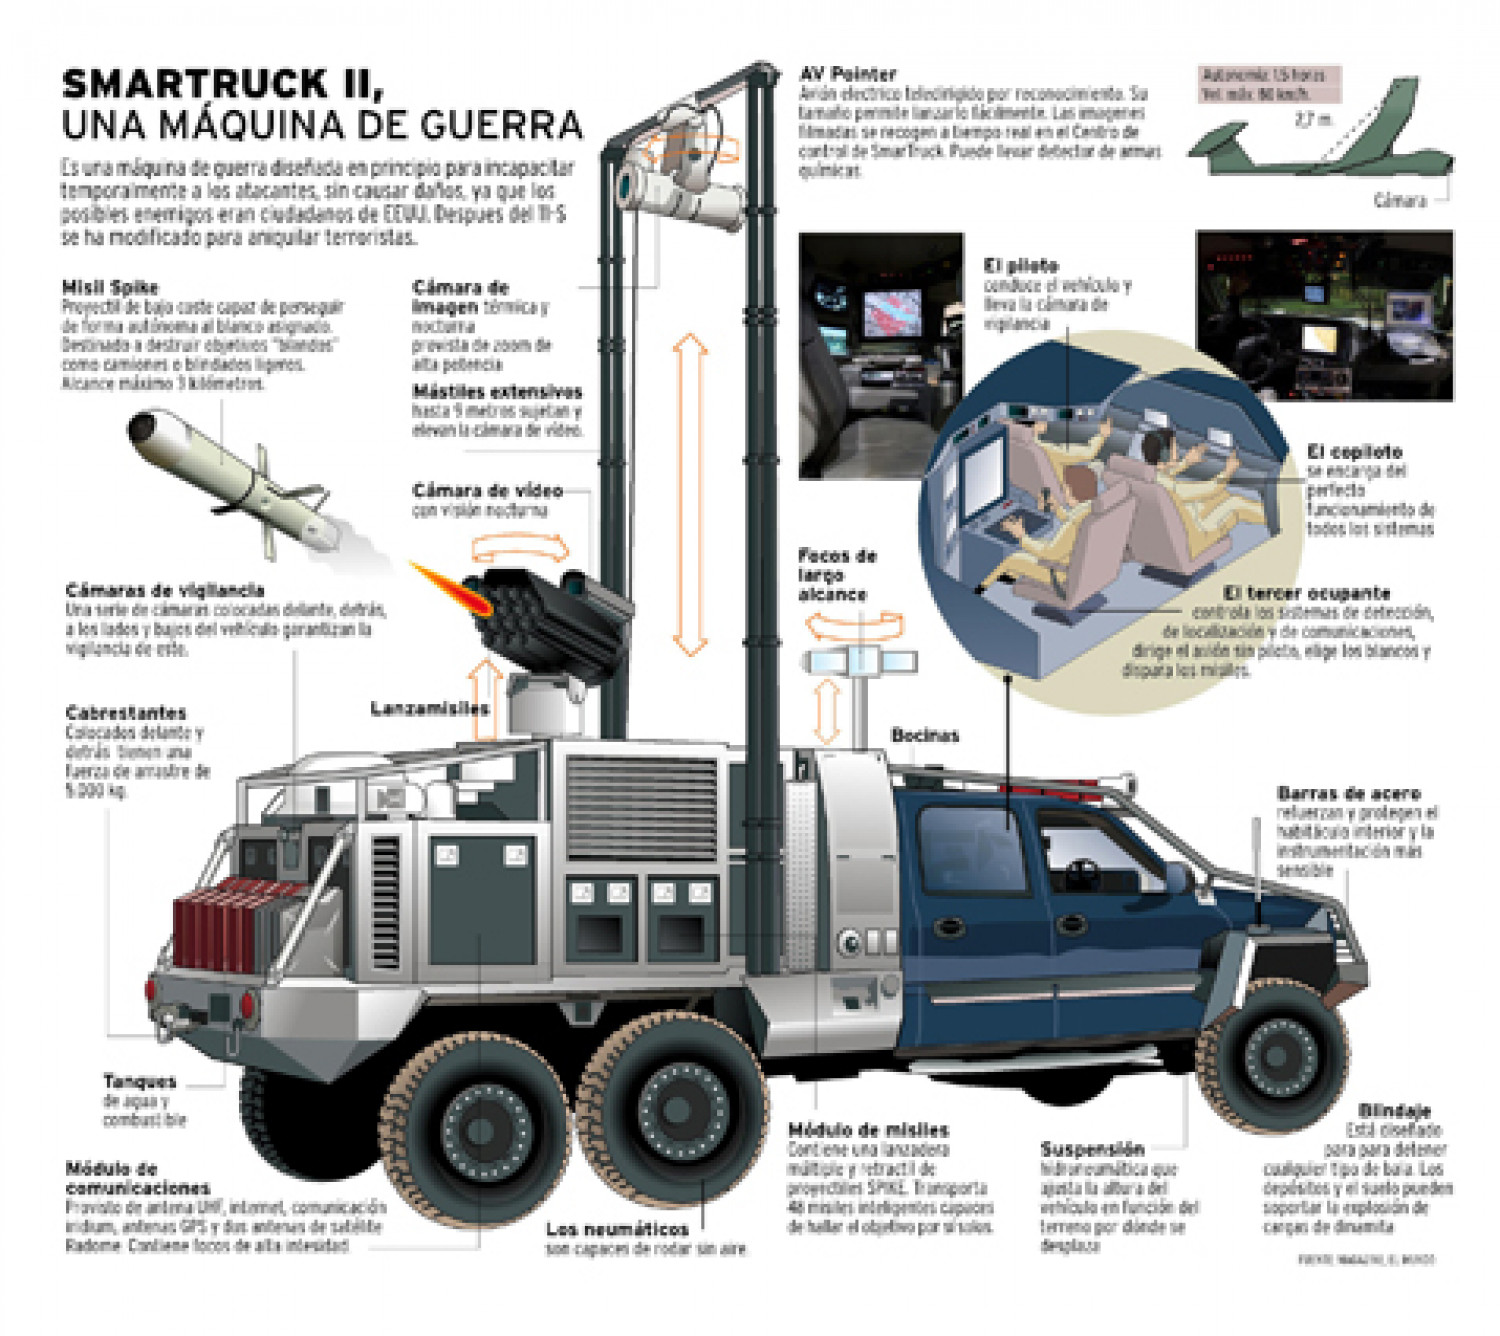 Smarttruc a war machine Infographic